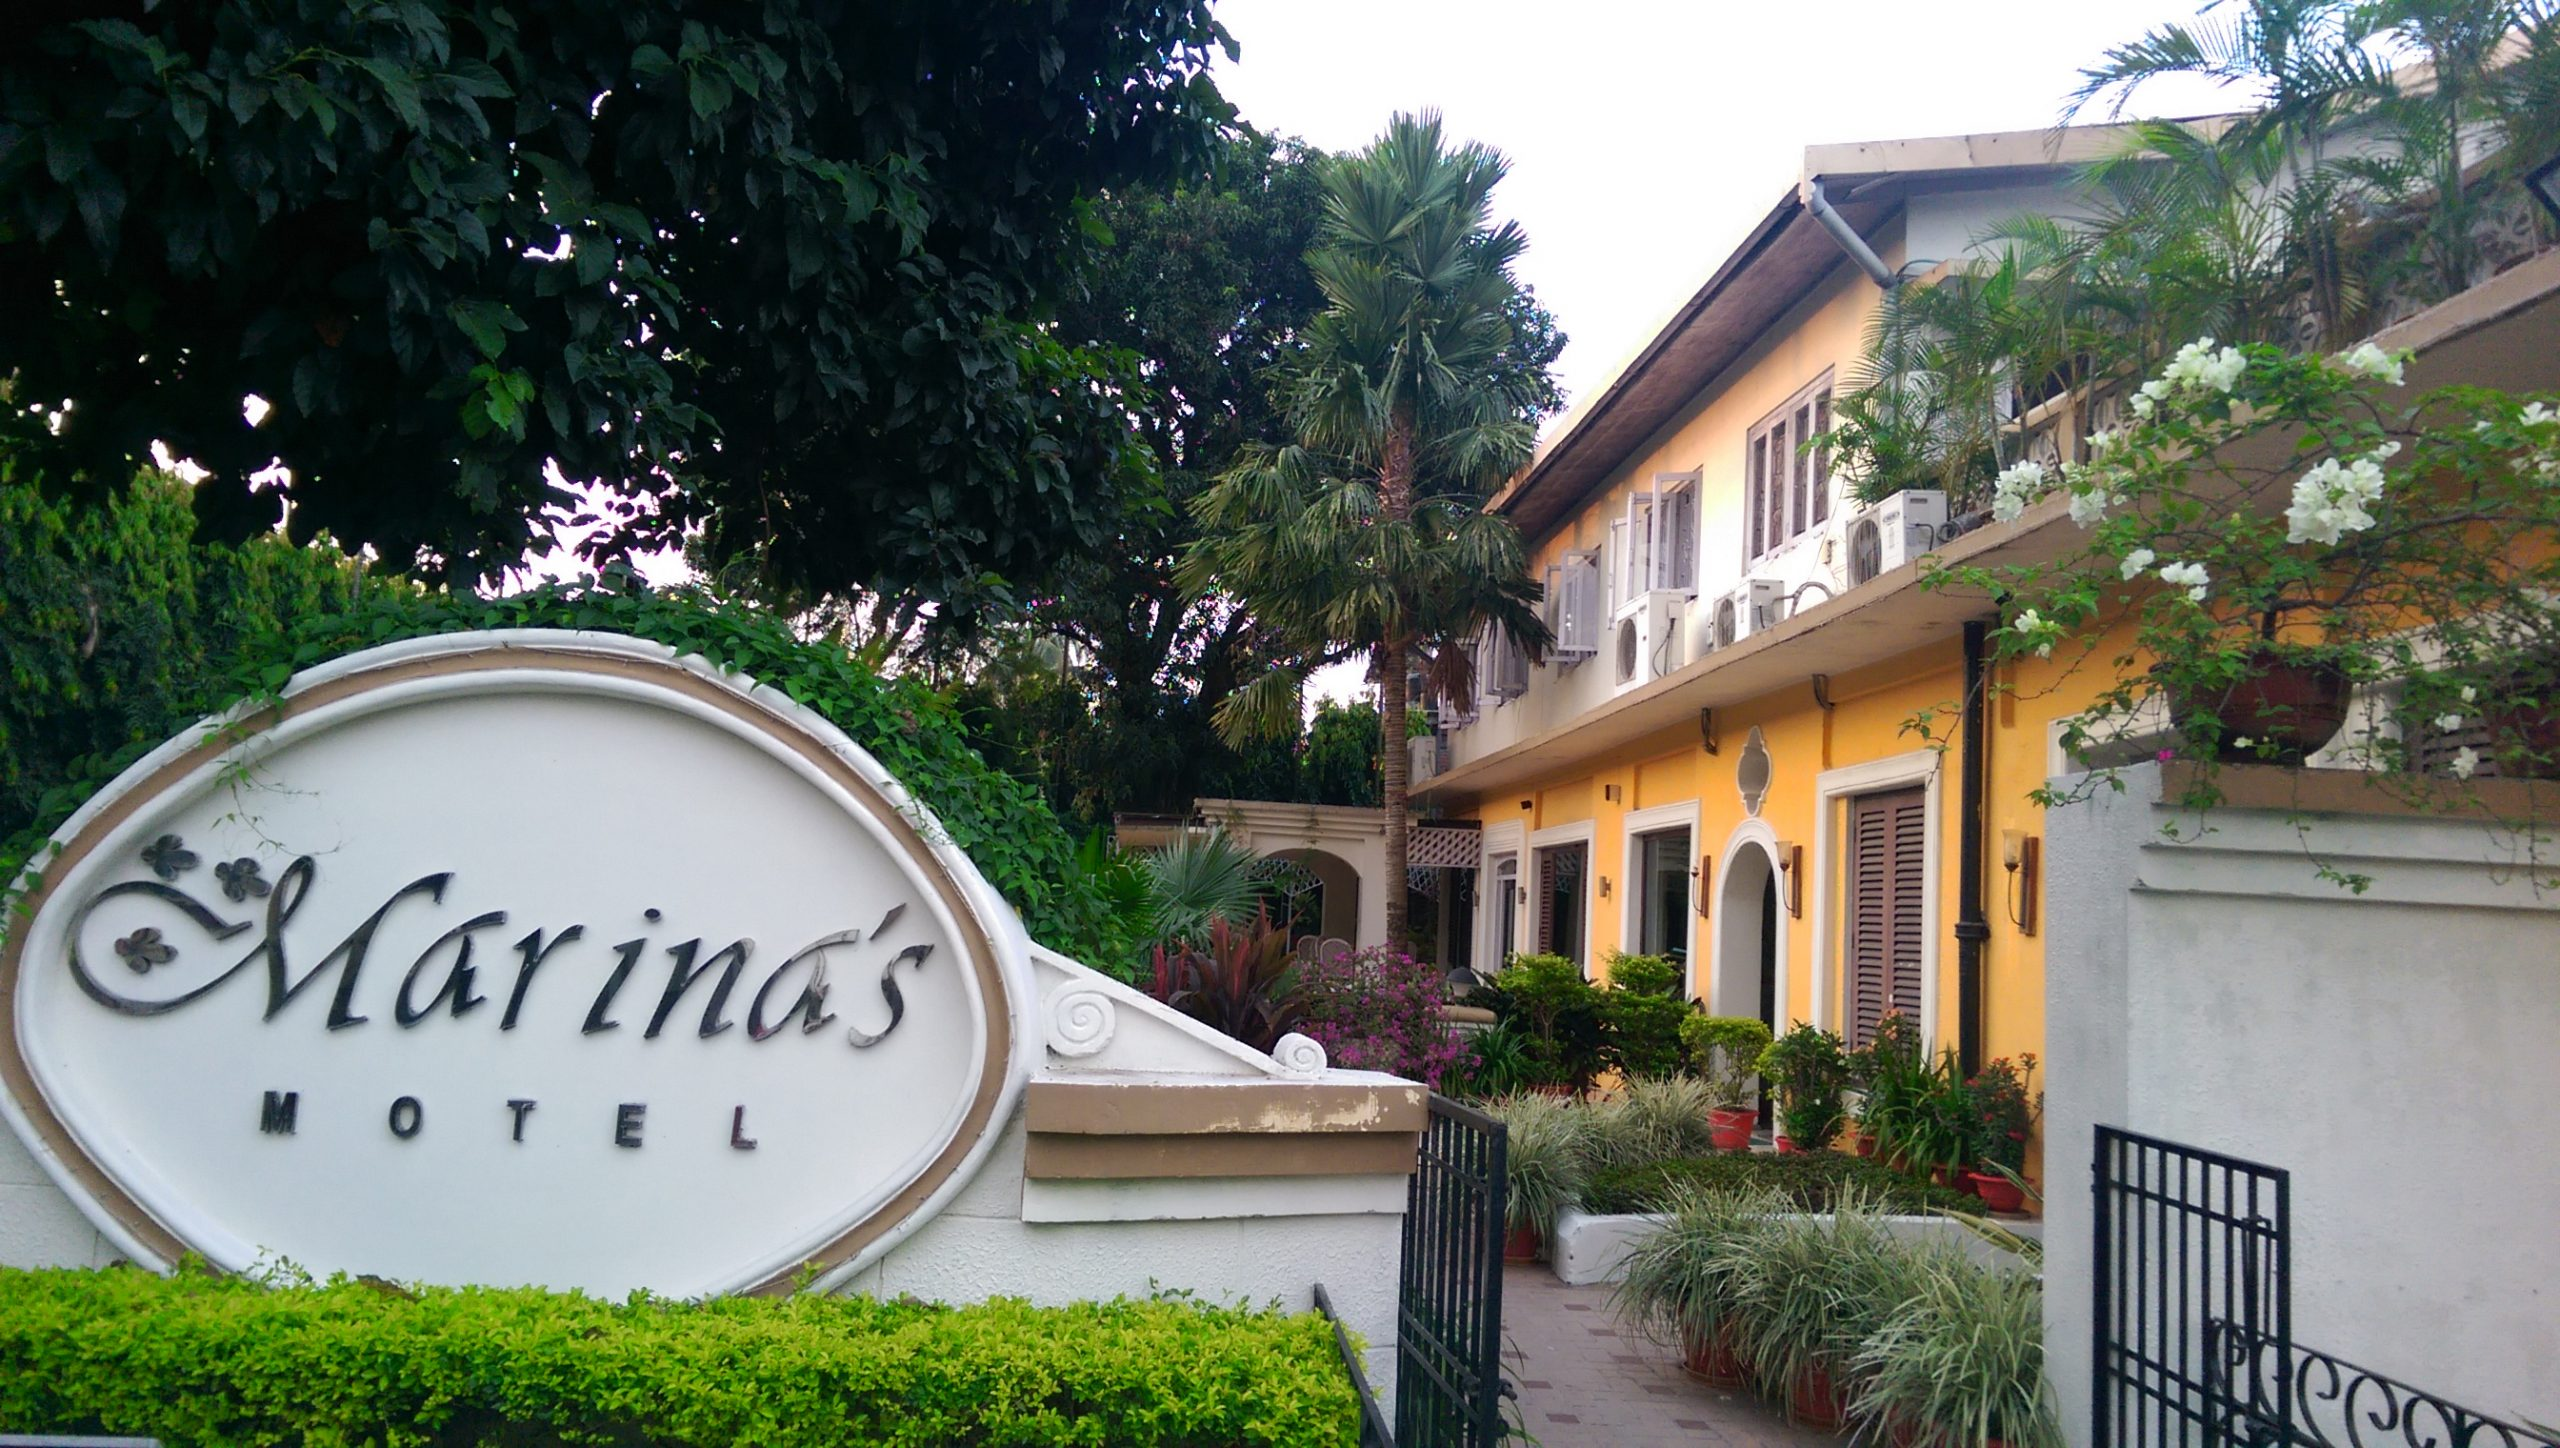 Restaurant In Siliguri That Every Food-Lover Must Try - Marina's Motel